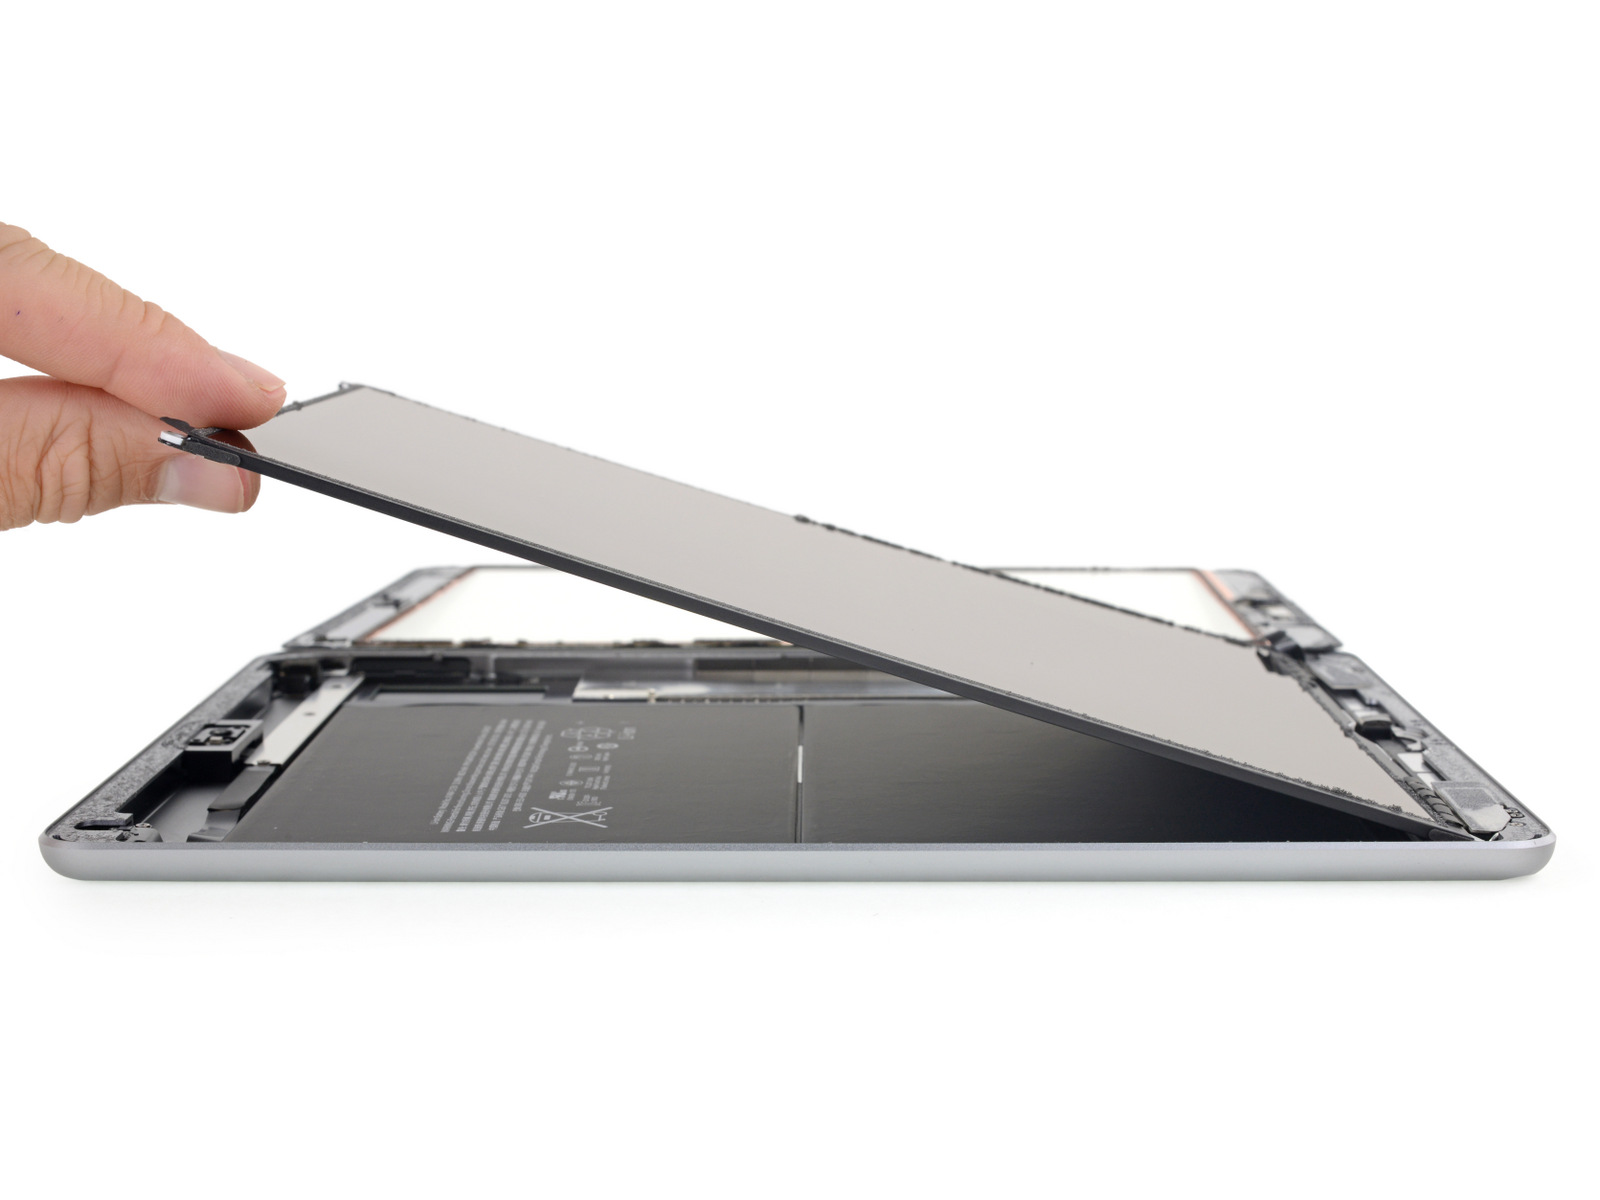 Scherm in iFixit teardown van de iPad 2018.